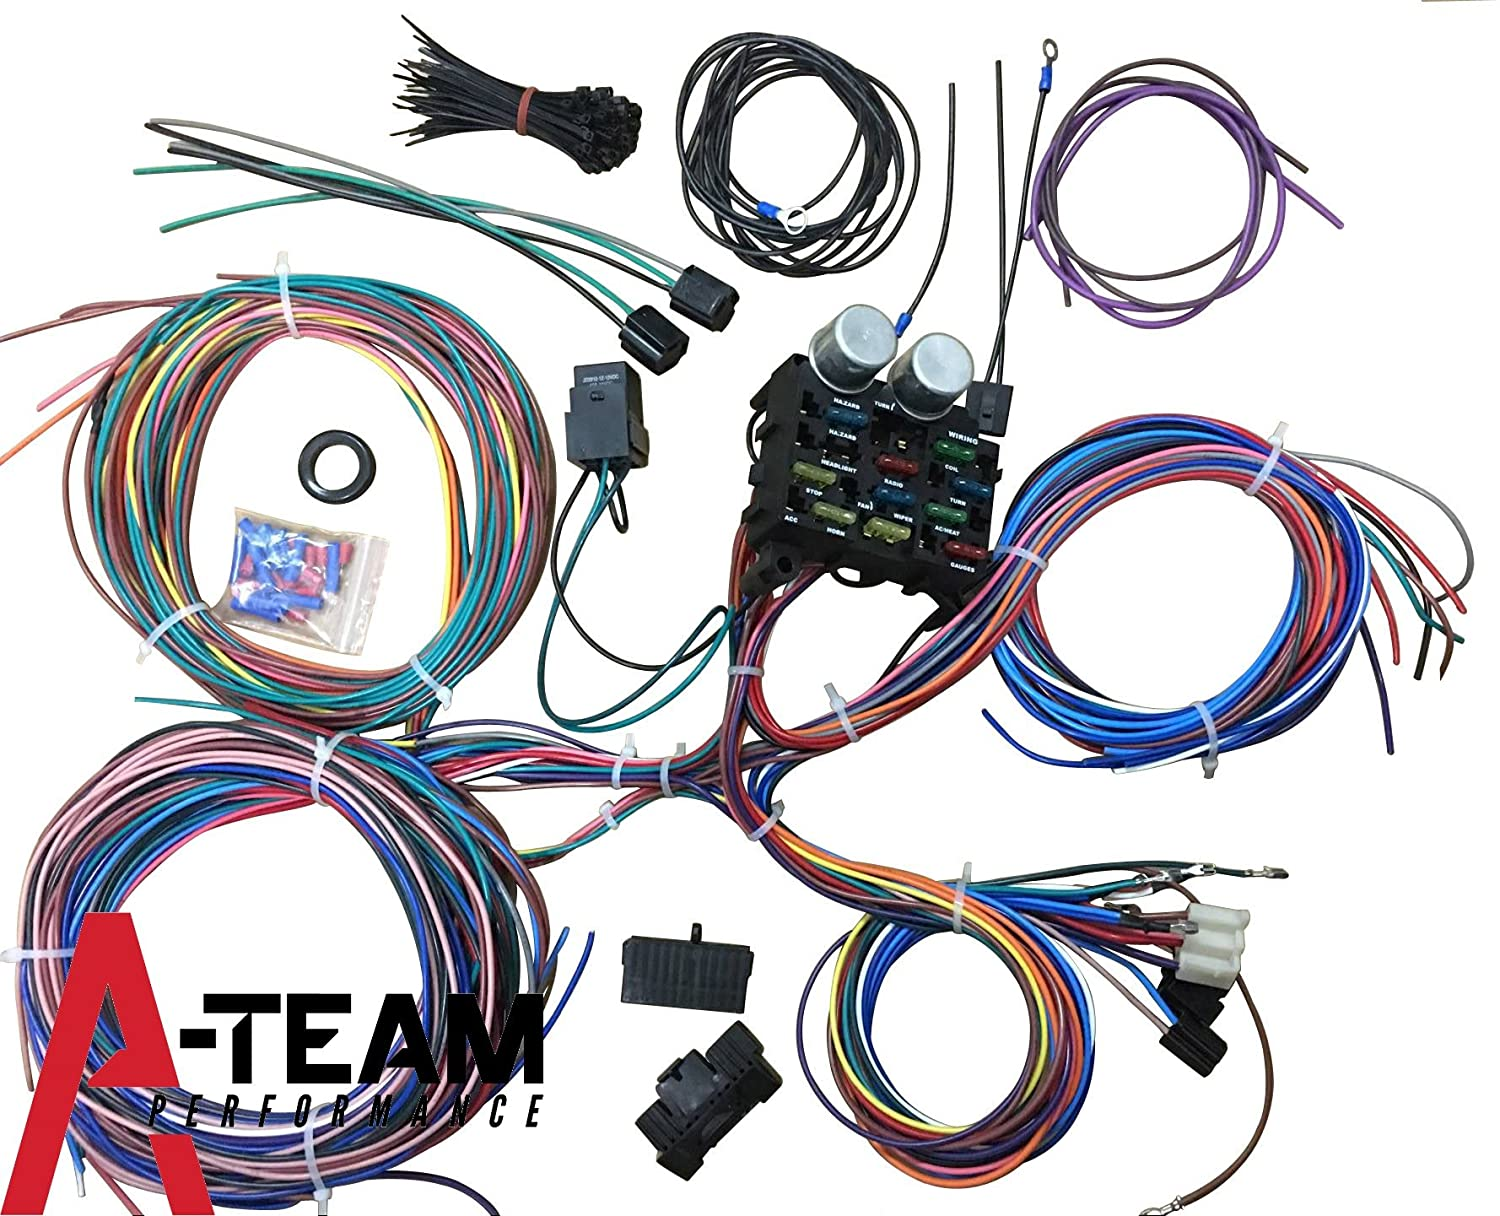 81nvGz8yhML._SL1500_ amazon com ez wiring mini 20 21 circuit wiring harness automotive ez wiring harness 21 circuit with gm column at mifinder.co